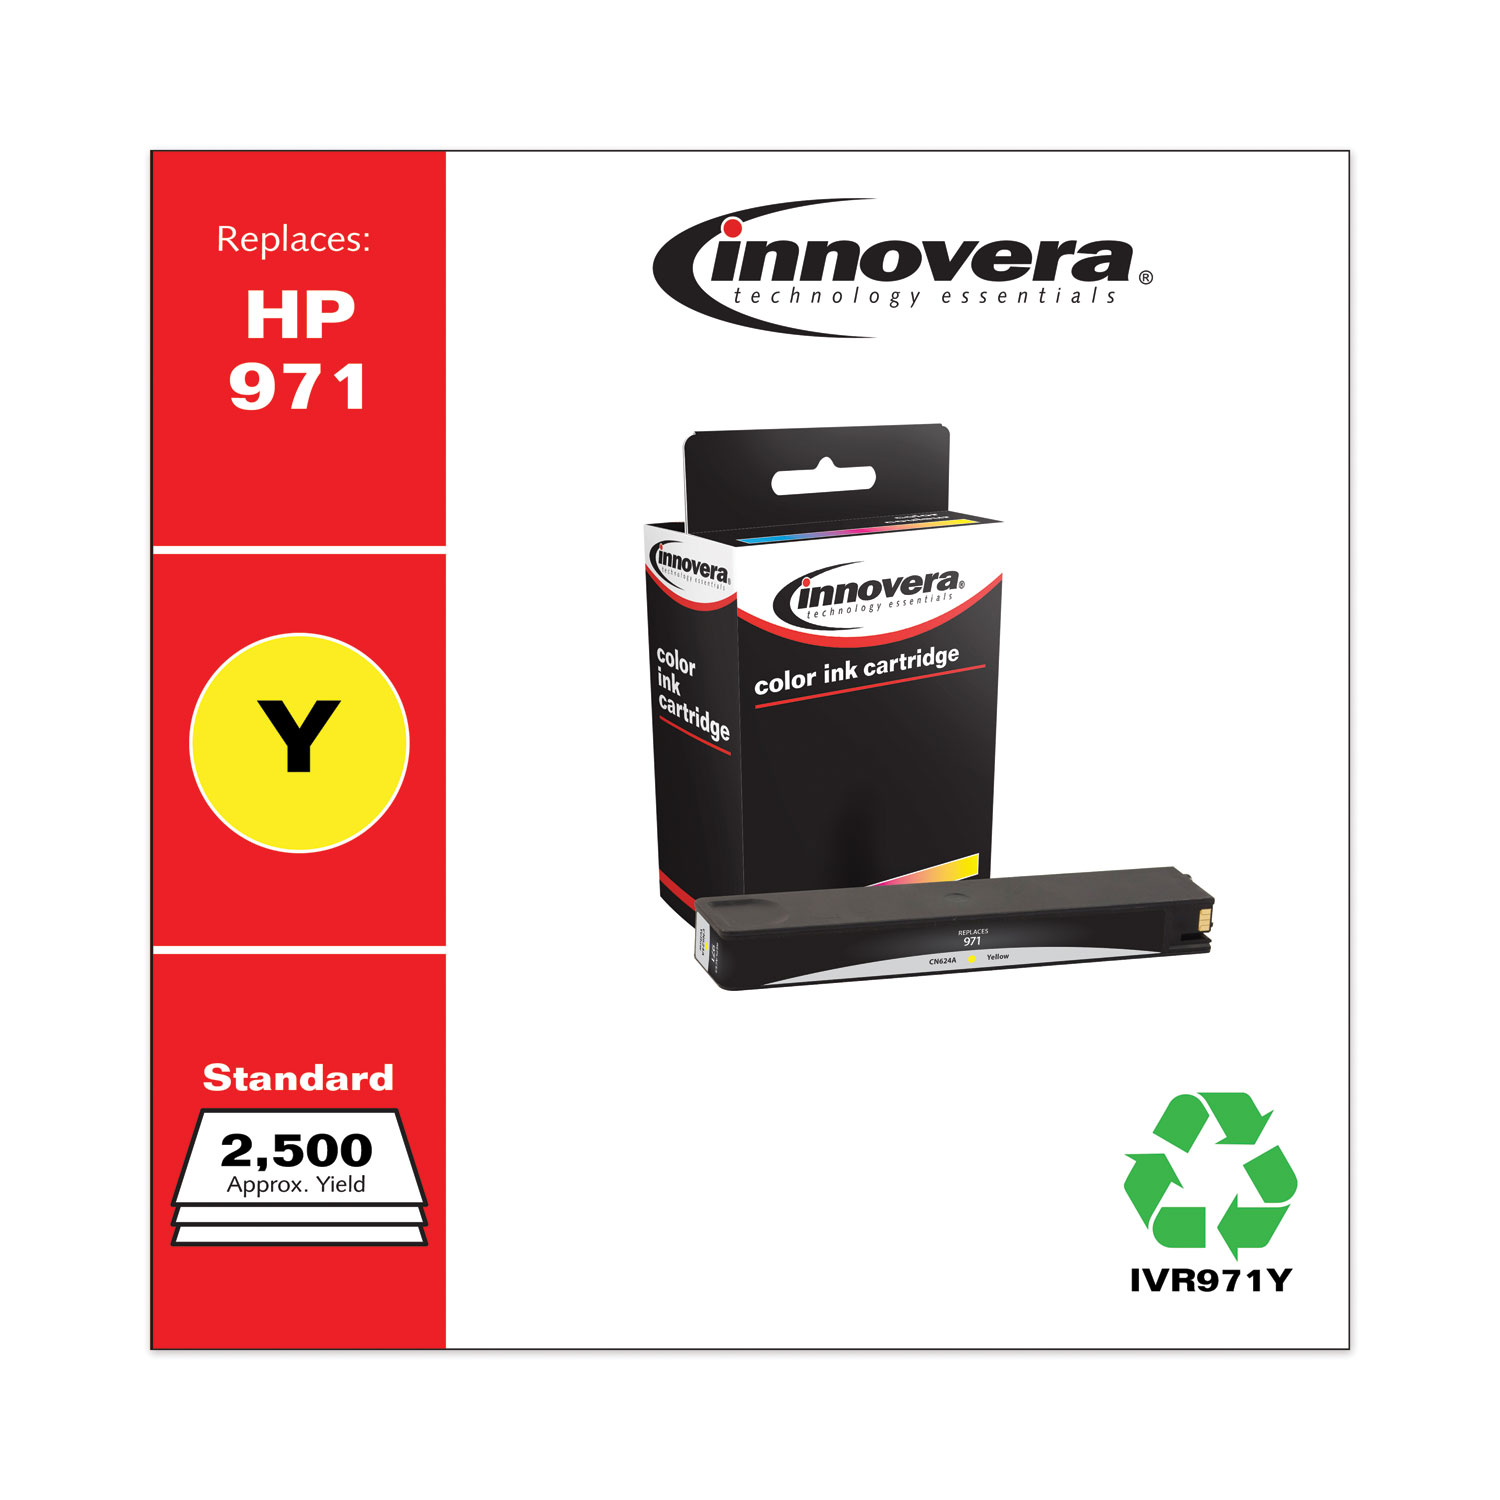 Remanufactured Yellow Ink, Replacement for HP 971 (CN624AM), 2,500 Page-Yield IVR971Y